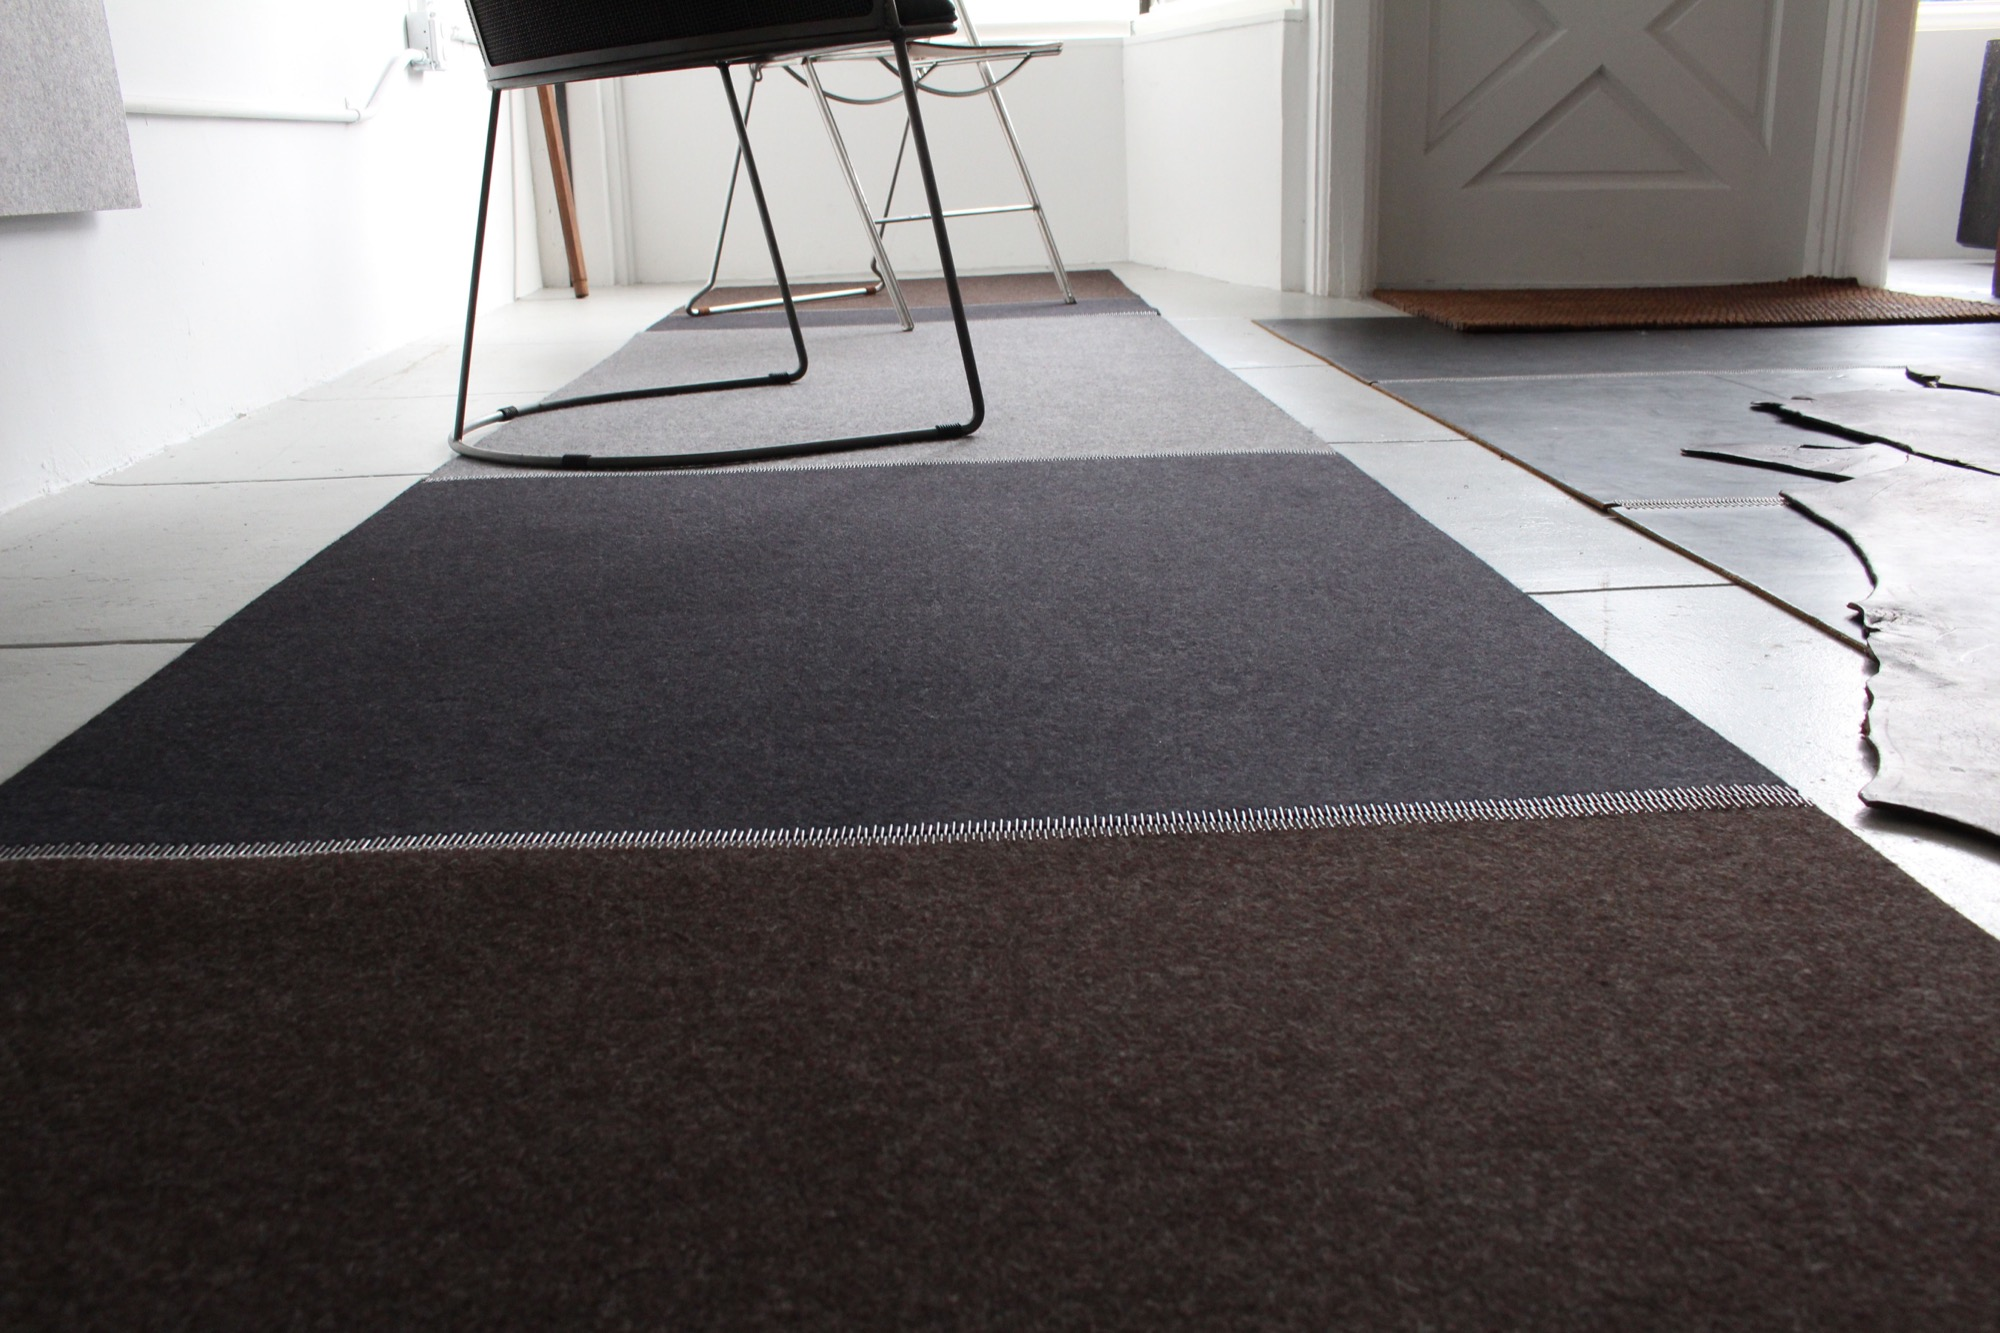 Felt Rug with industrial zipper by Jim Zivic